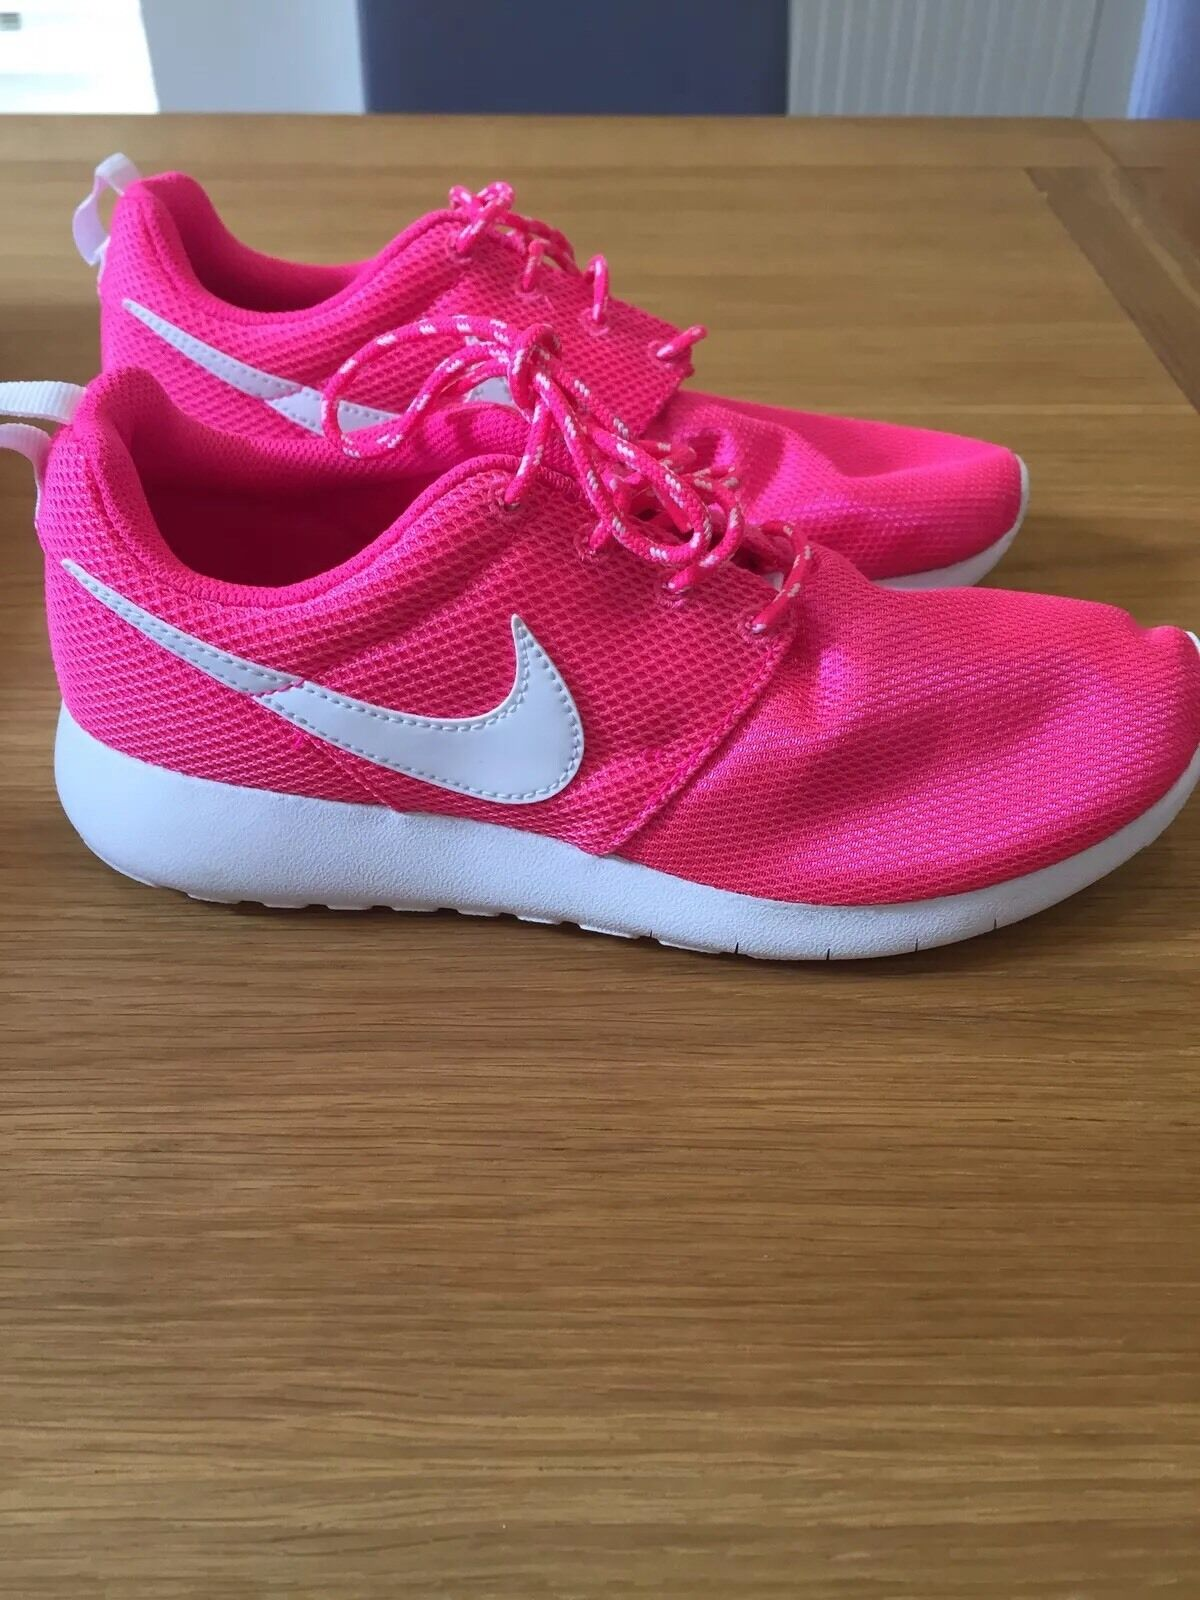 New in box Nike Roshe One new in pink size 4.5 or Genuine best-selling model of the brand